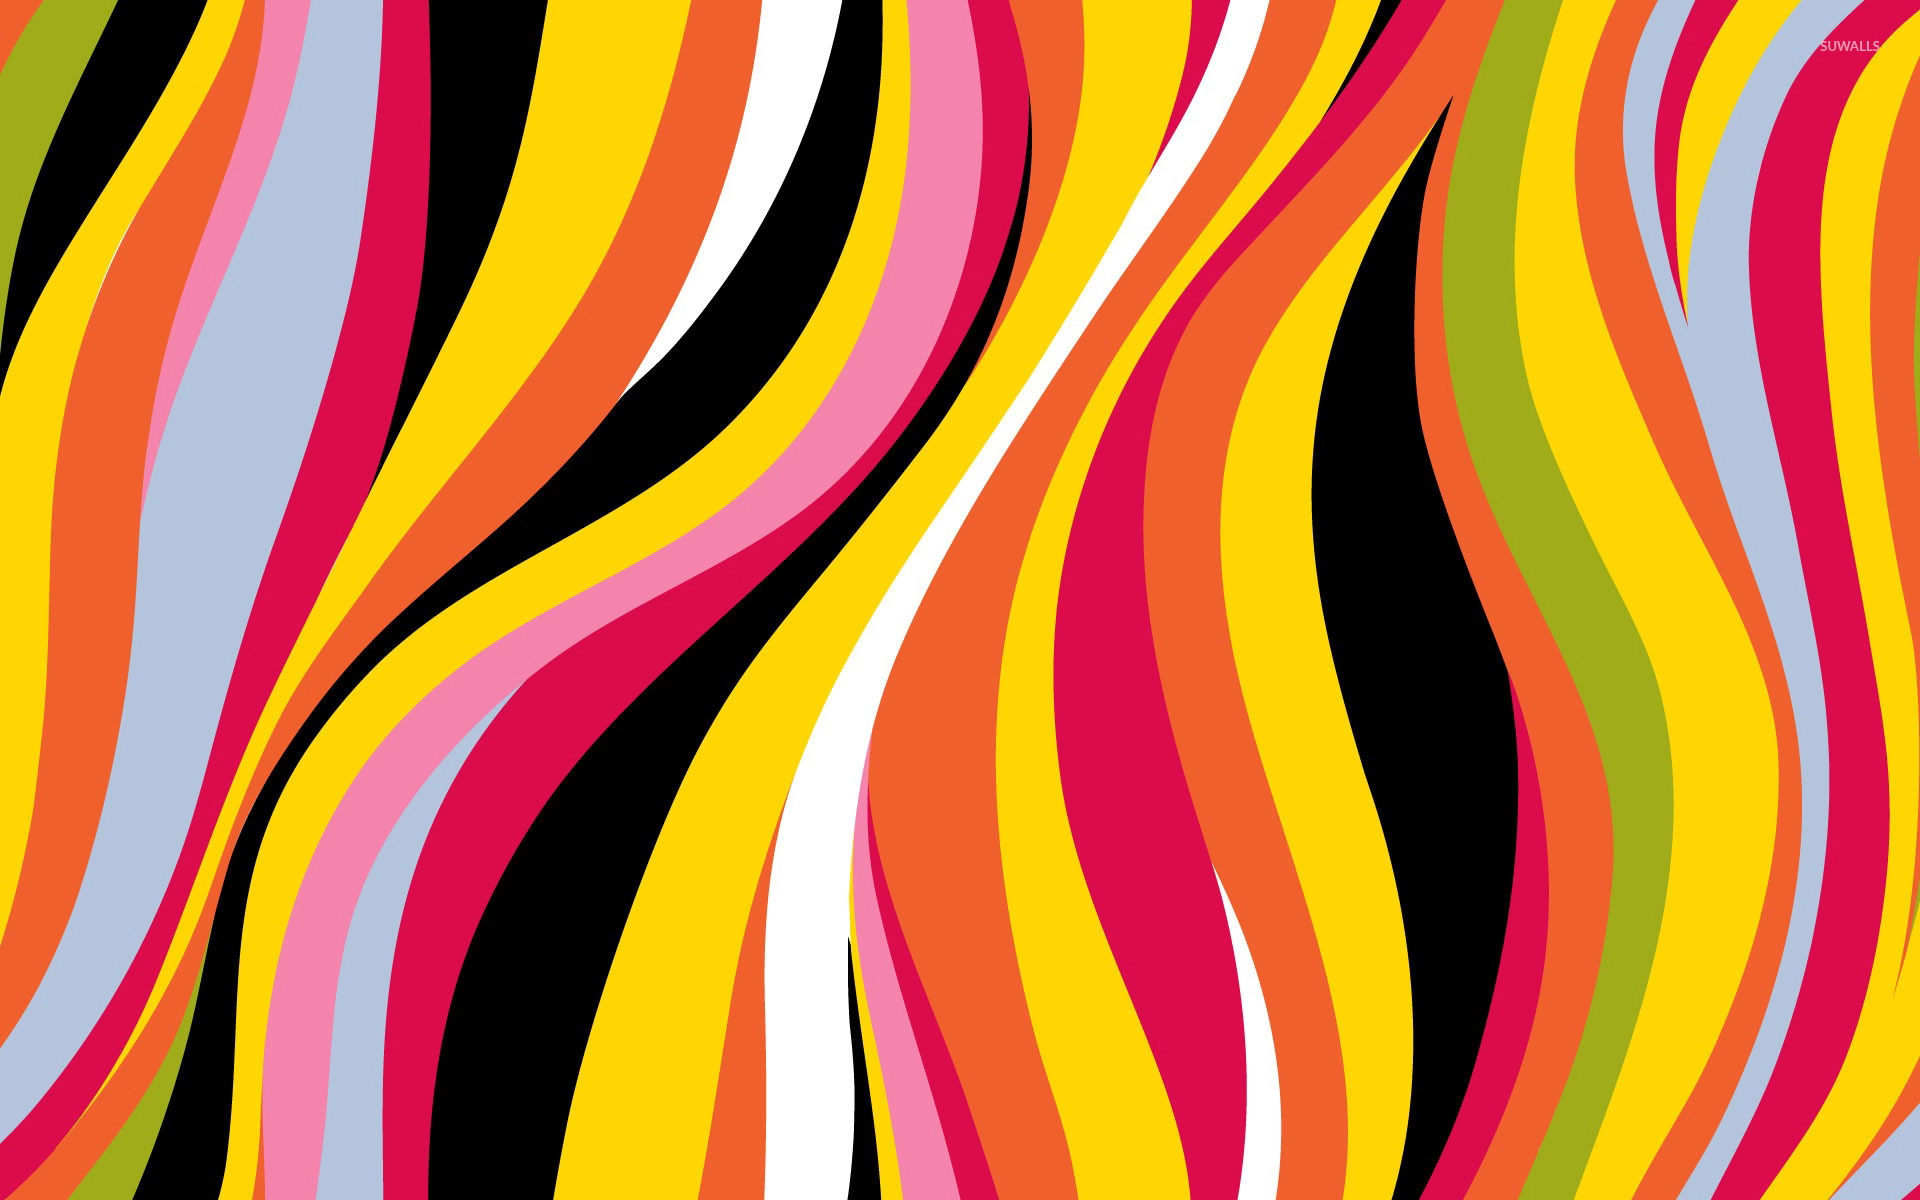 colorful waves 5 wallpaper vector wallpapers 18629